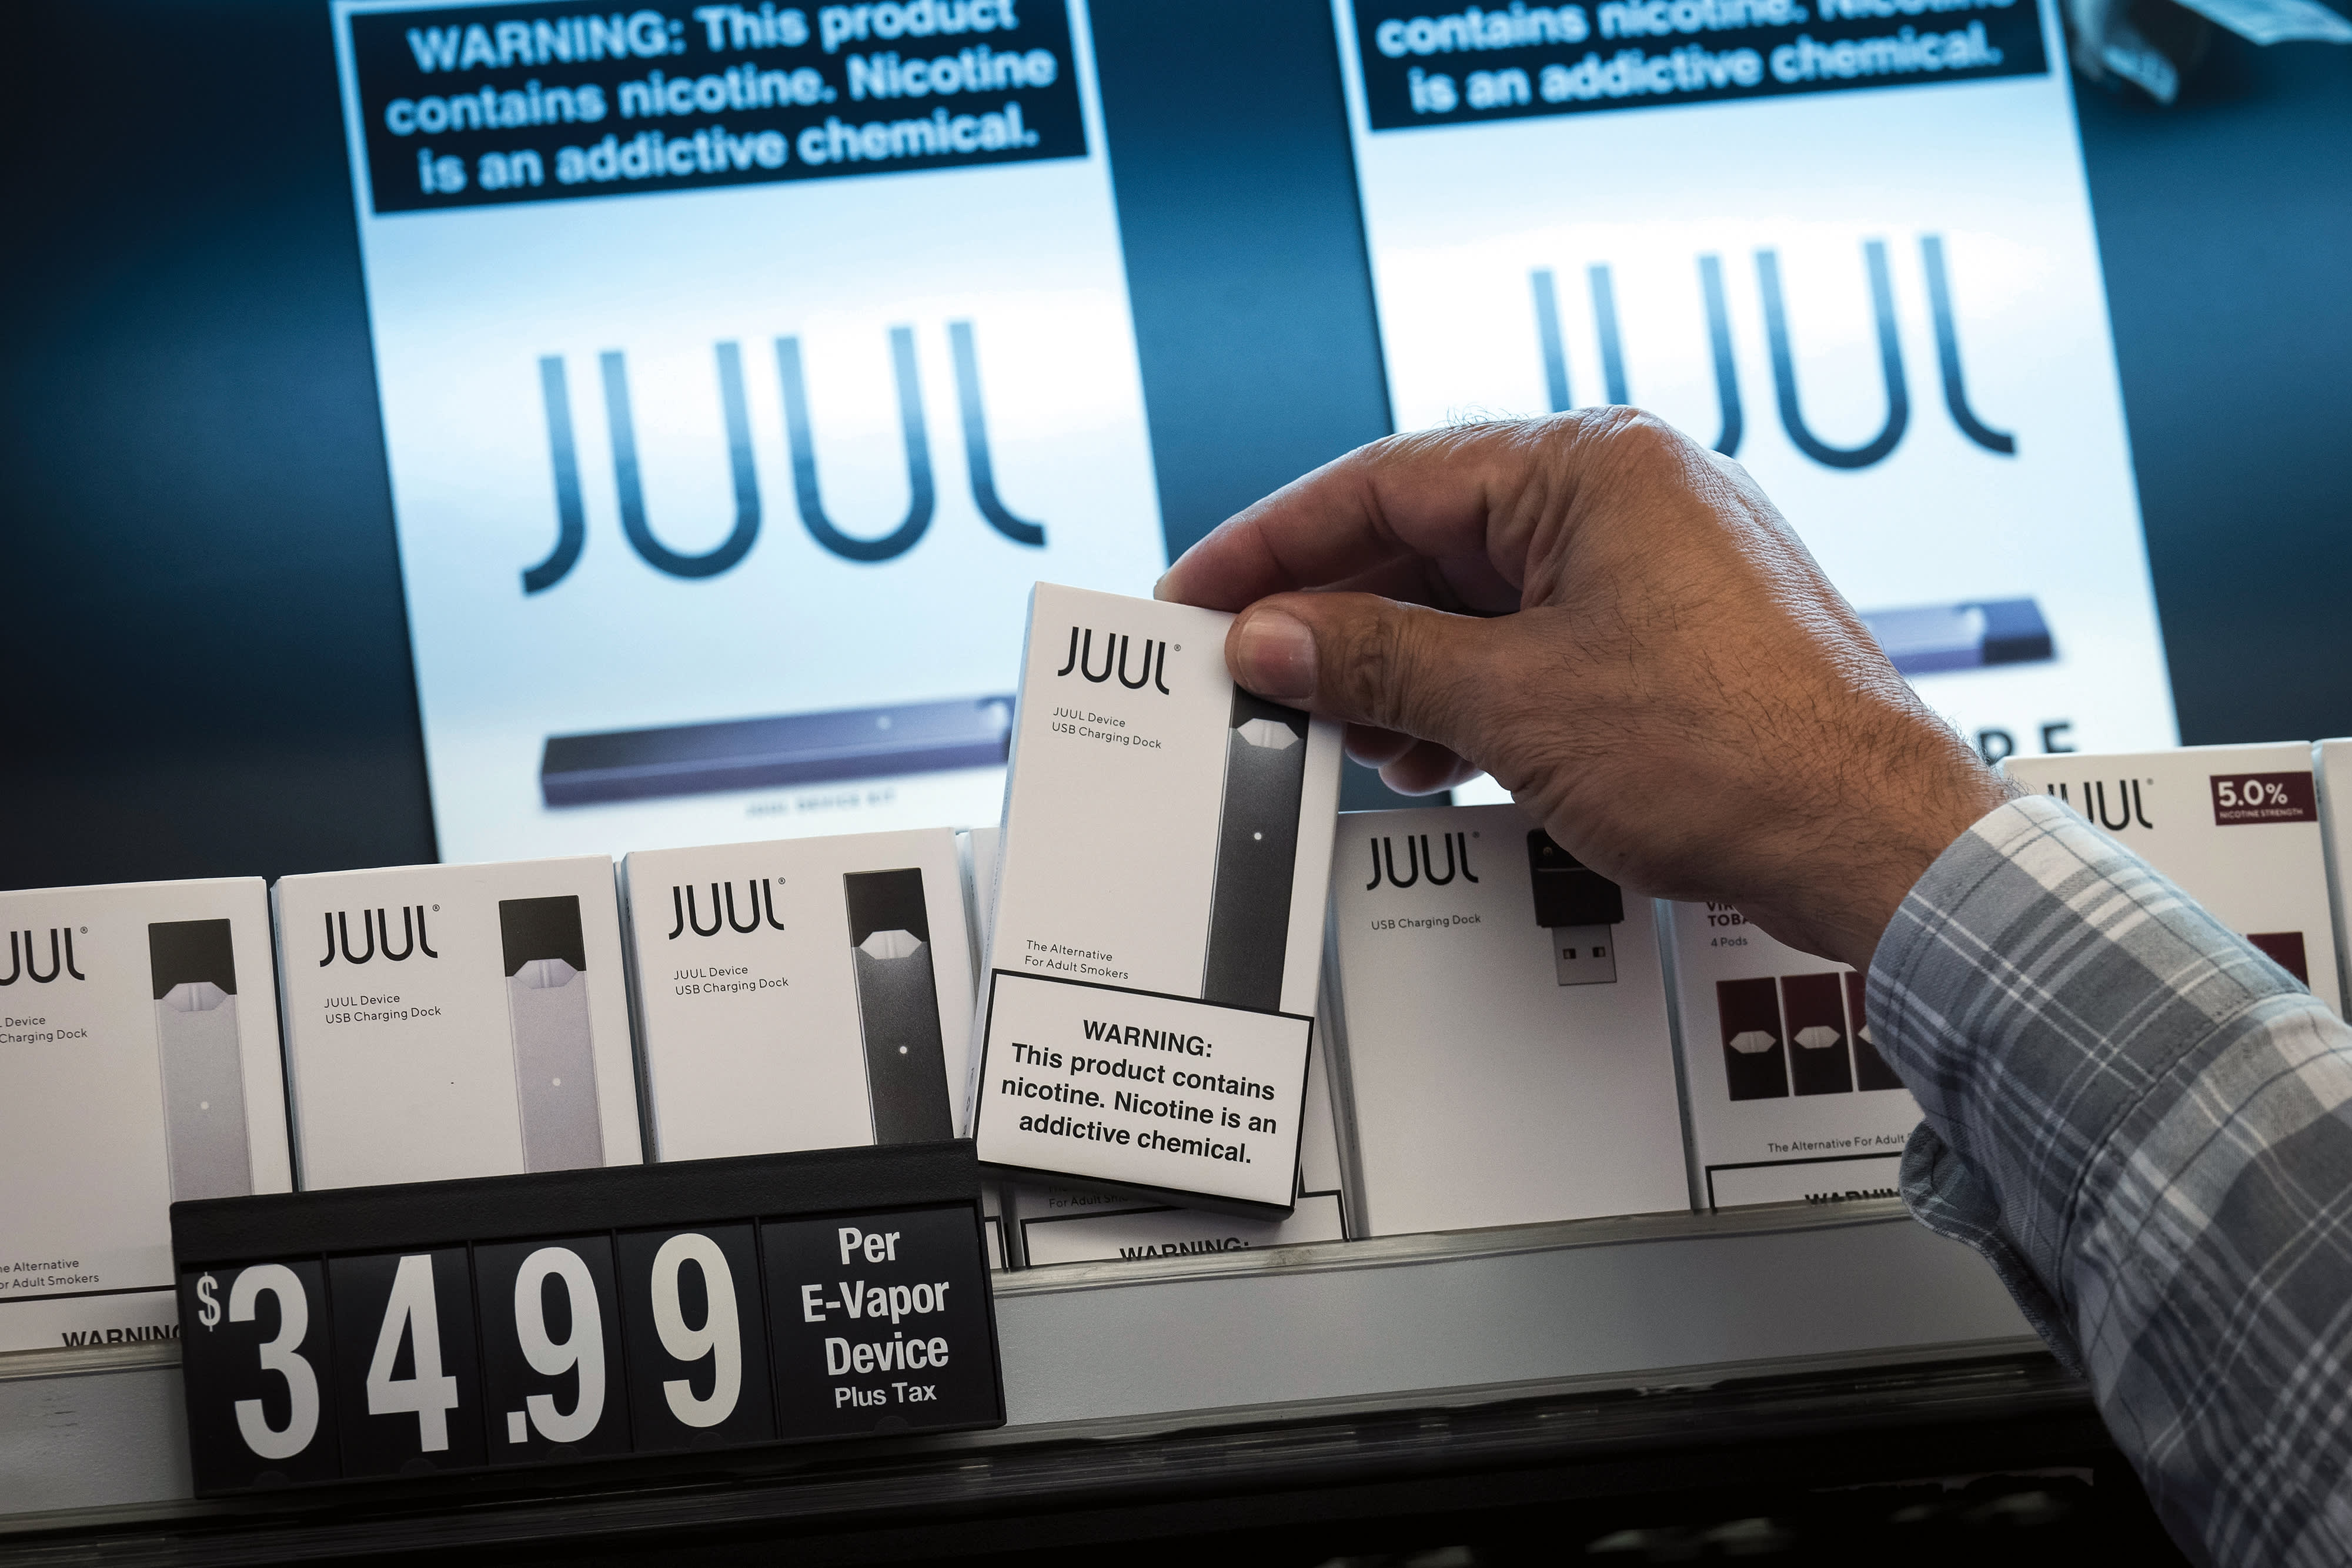 Juul's apology 'fake,' Campaign for Tobacco-Free Kids says